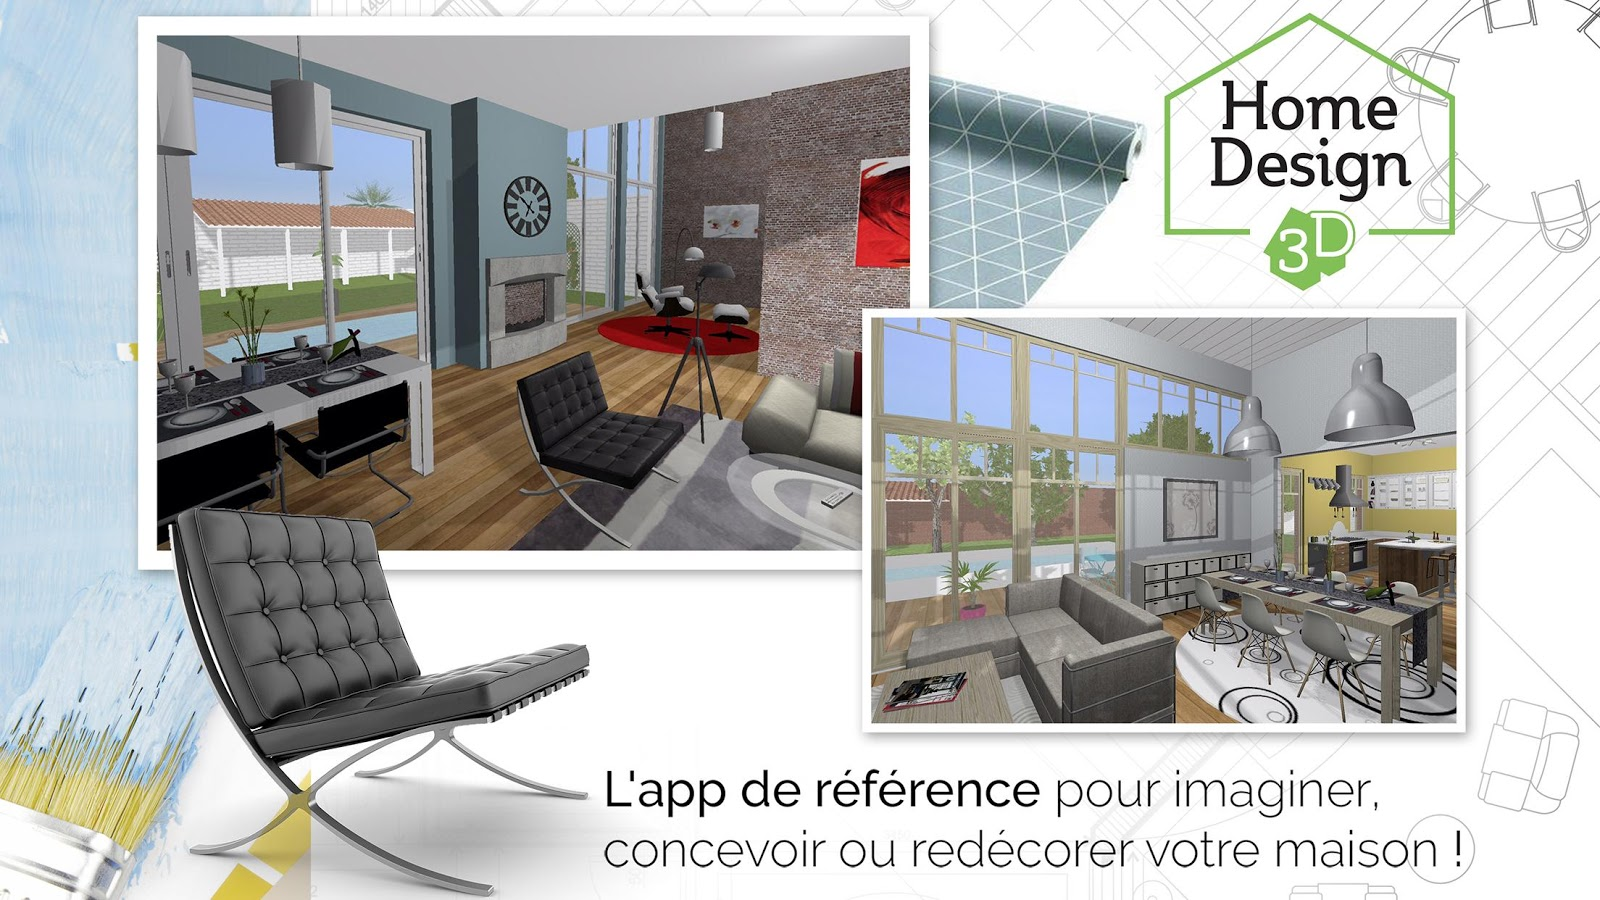 Home design 3d freemium applications android sur Design your house app